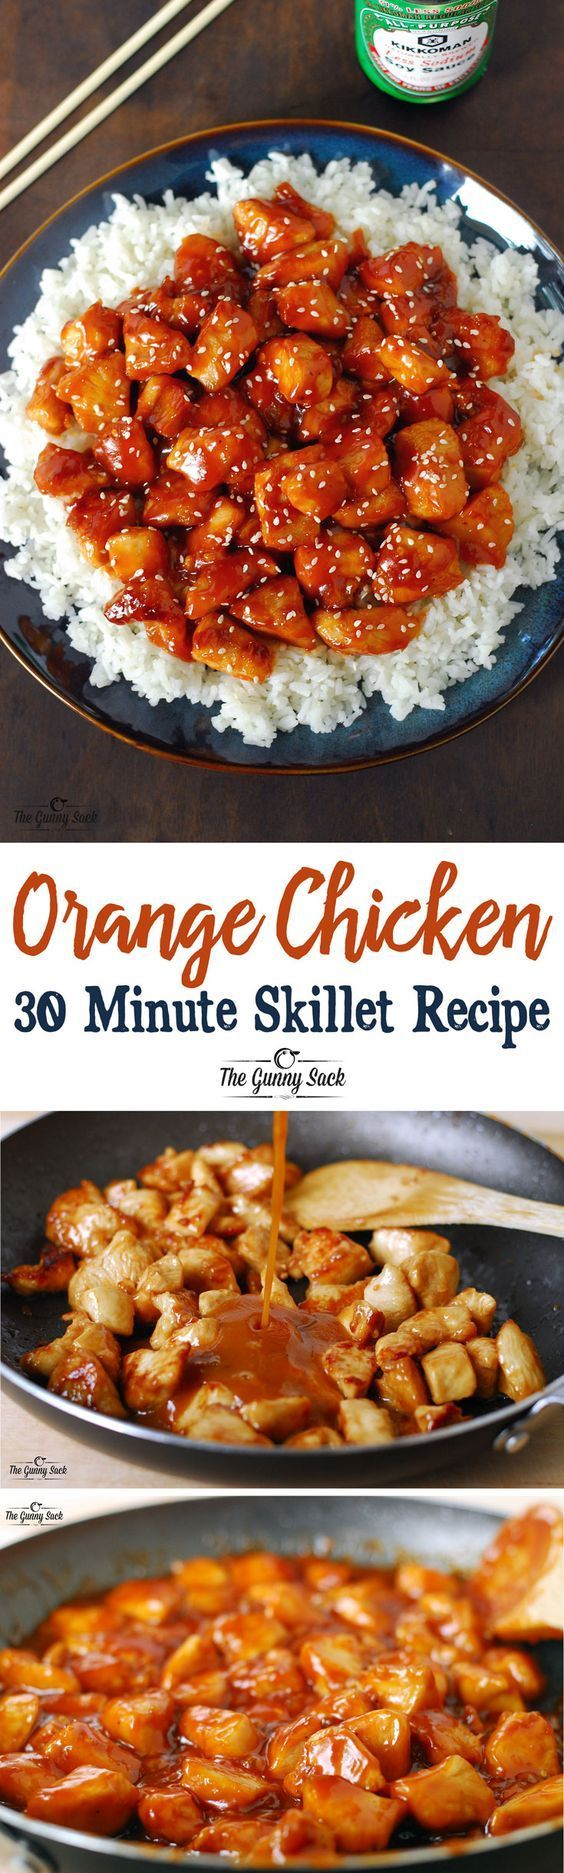 Orange Chicken 30 Minute Skillet Recipe A Easy Dinner Idea That Is Family Friendly